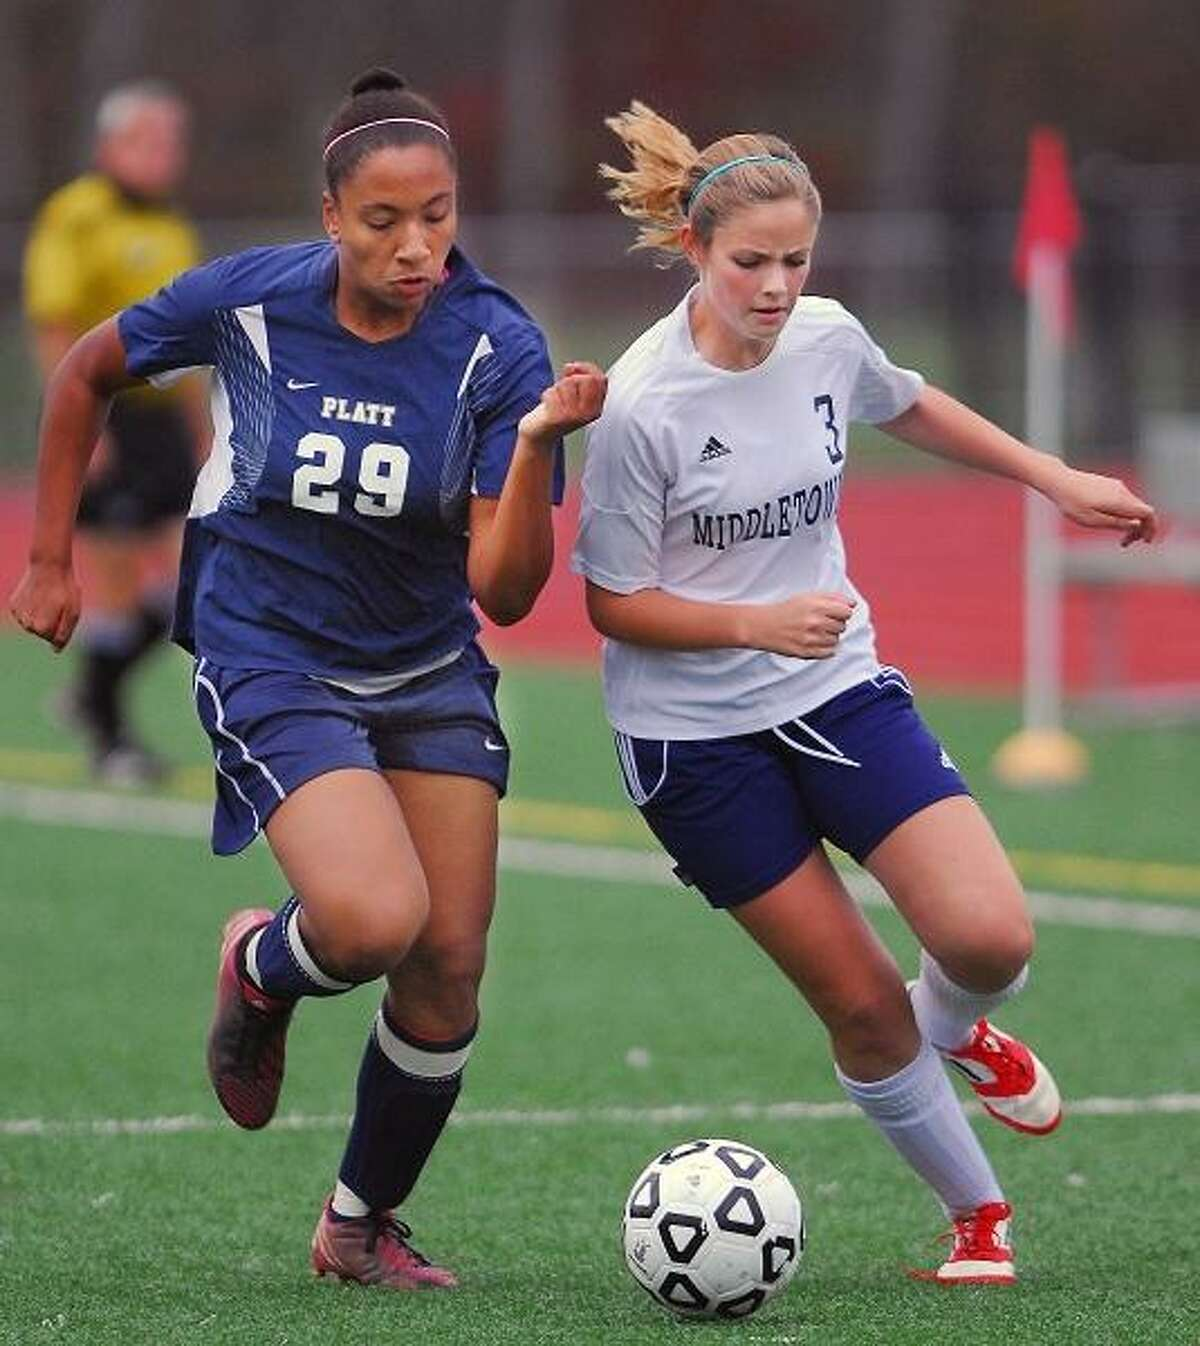 Catherine Avalone/The Middletown PressMiddletown senior Elizabeth Marx fights for posession with Platt freshman Hayley Dudley during a match Friday afternoon. The Blue Dragons defeated Platt 2-1 in overtime and remains undefeated 14-0-1.